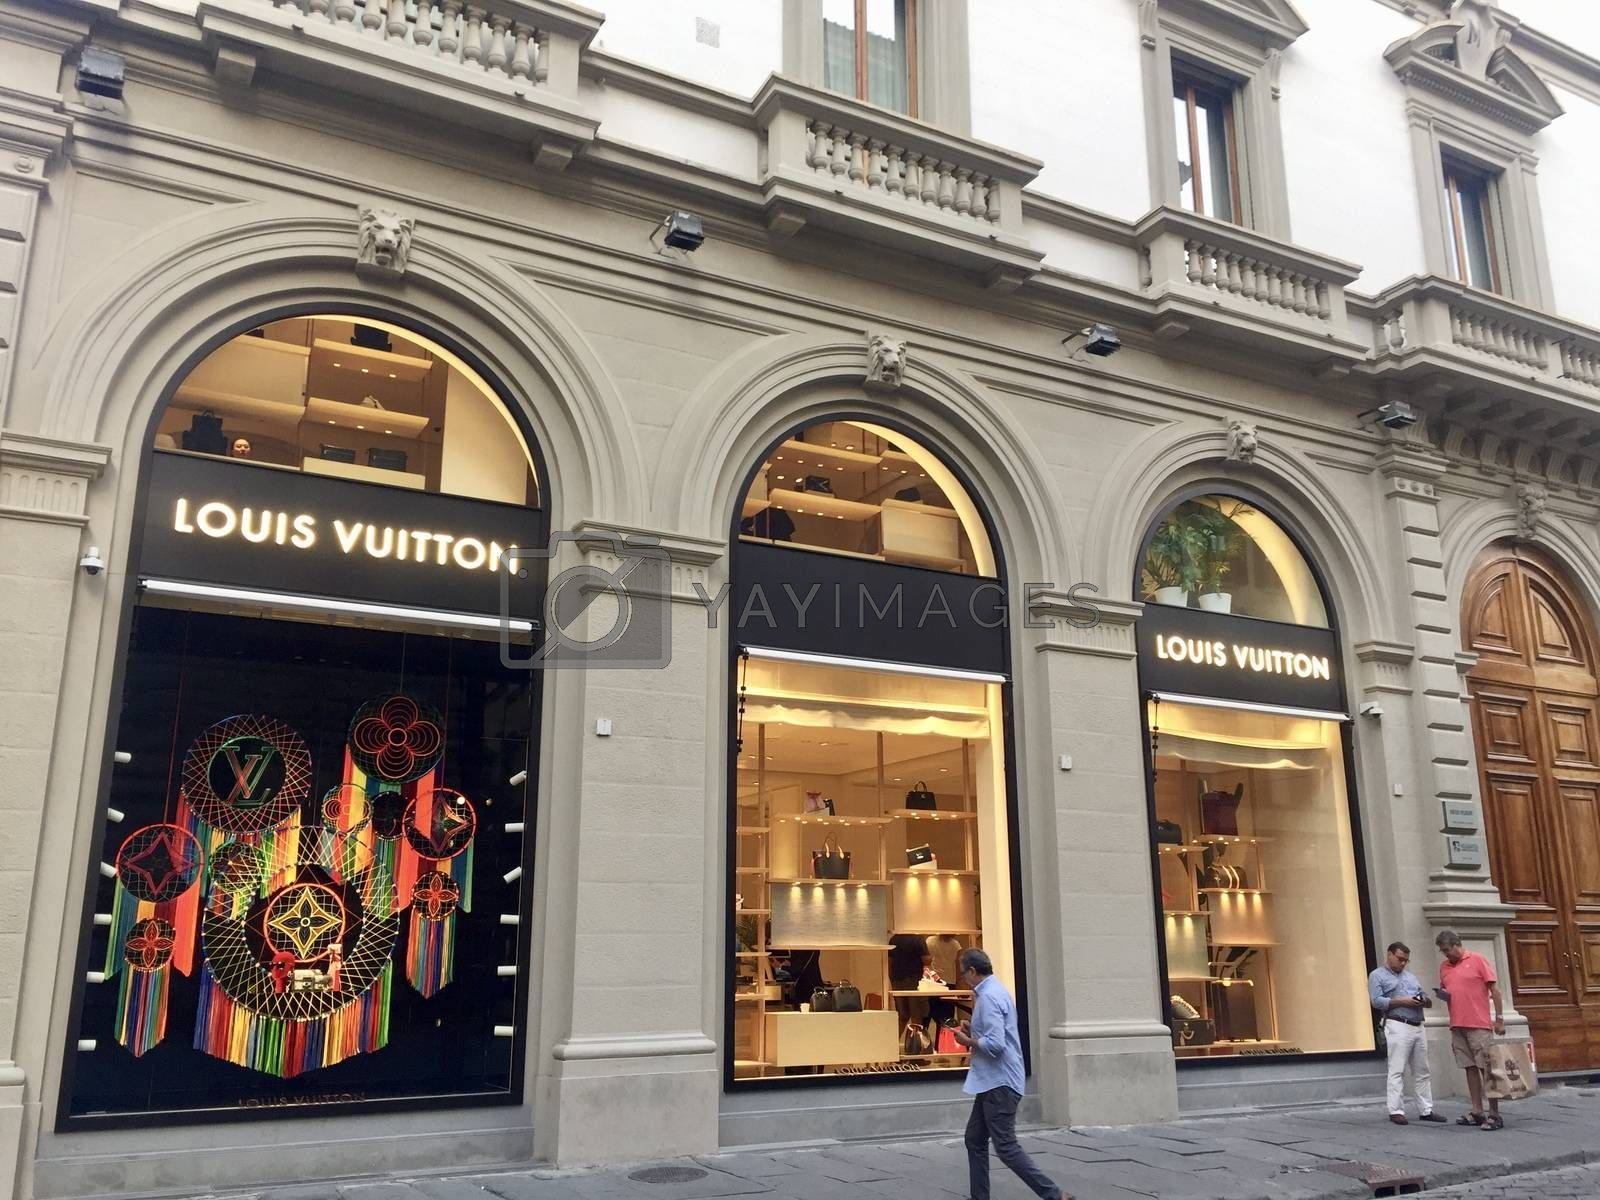 Florence, Italy - August 24, 2019: Facade of Louis Vuitton store in the center of Florence.